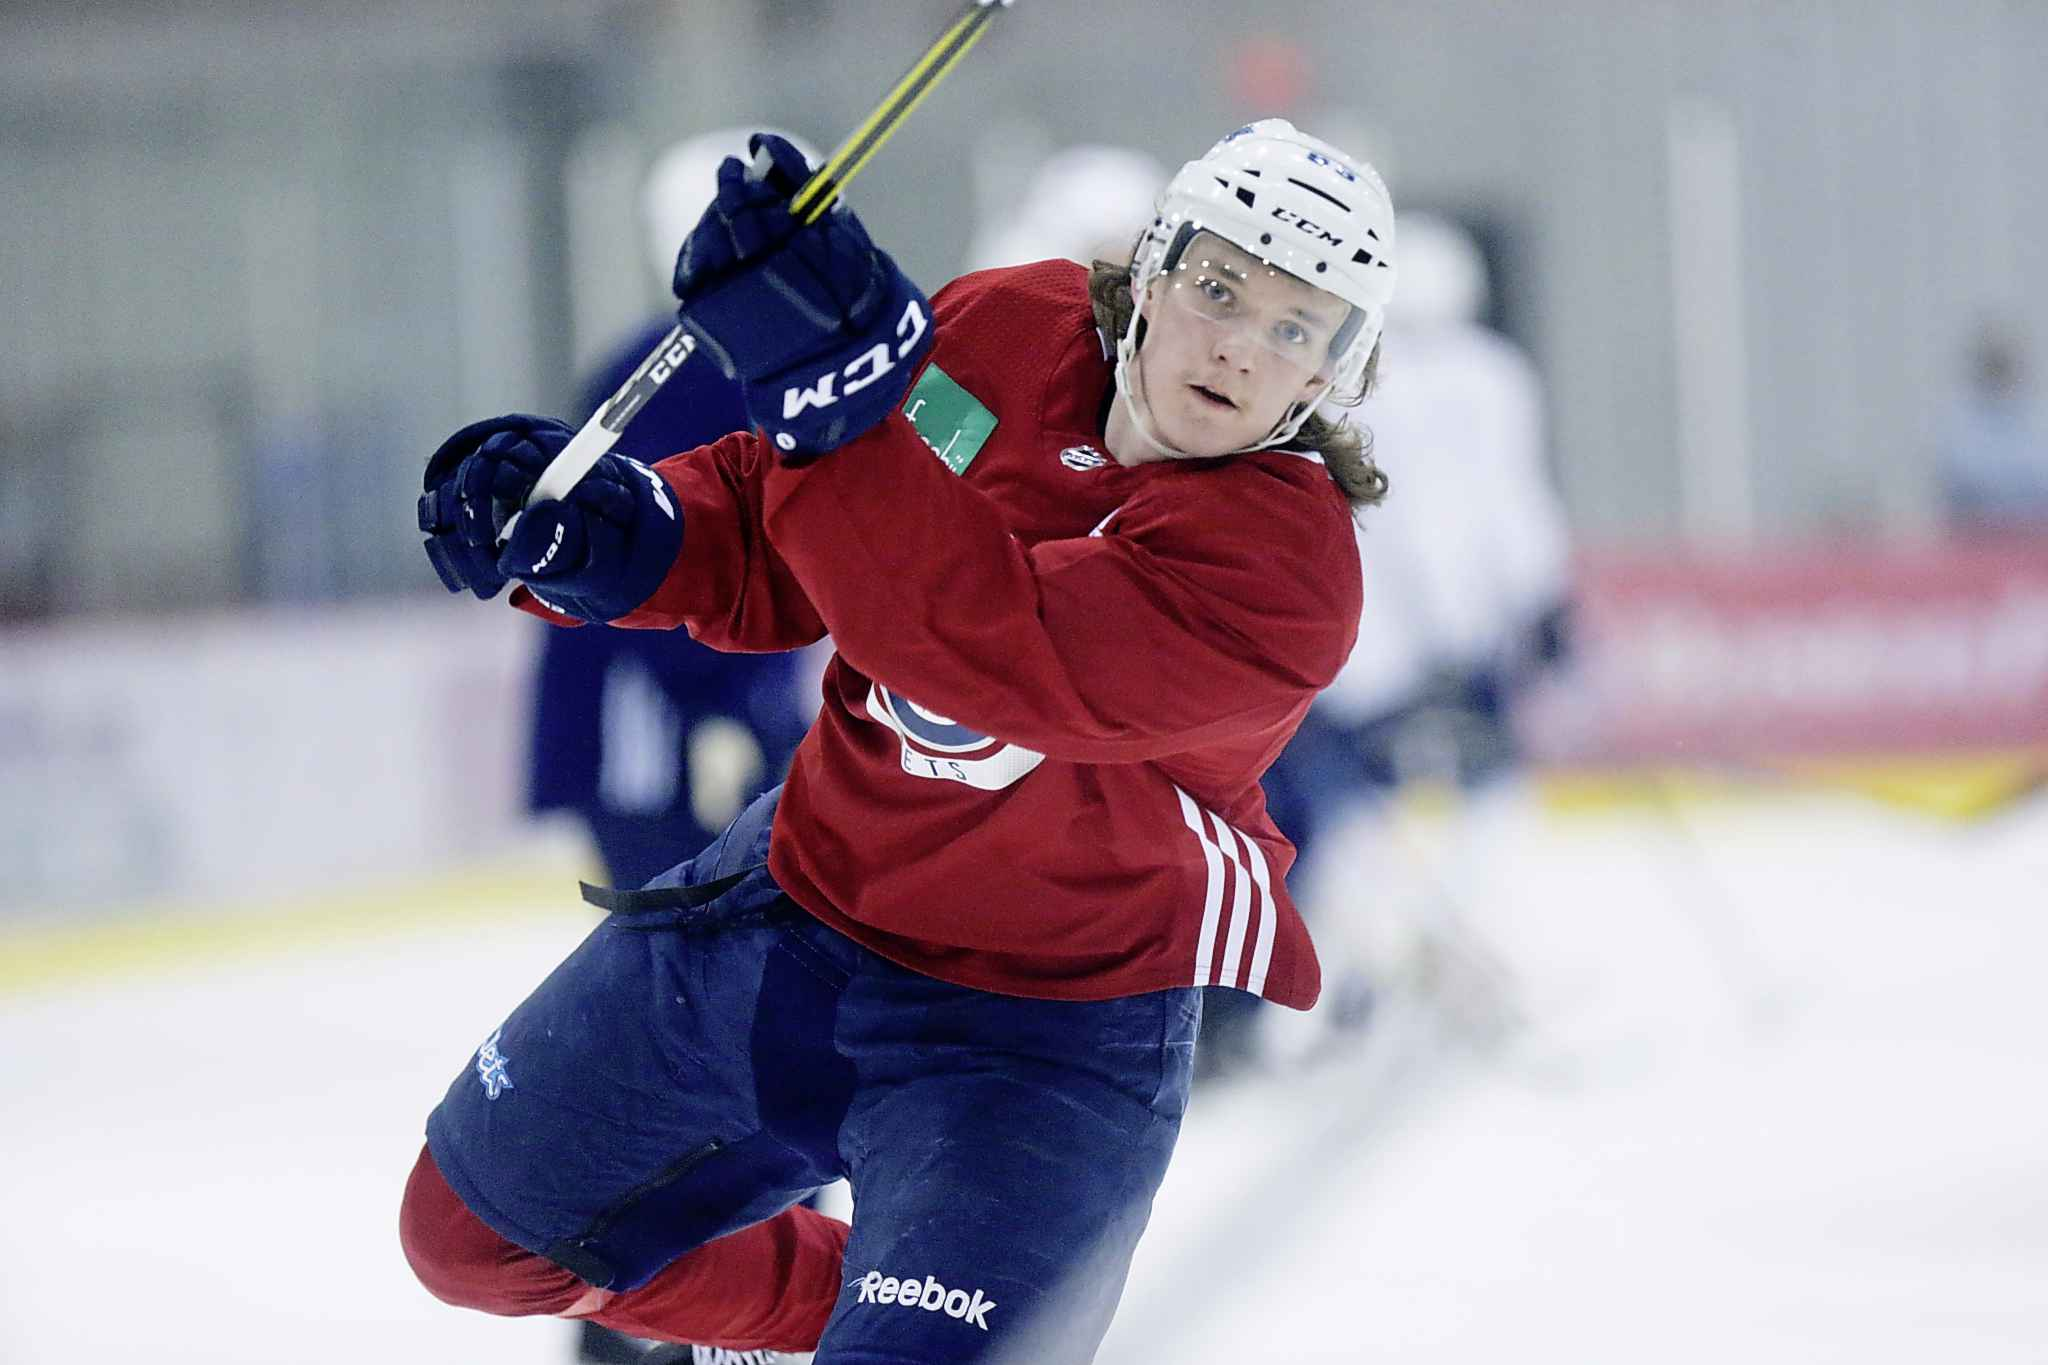 Despite scoring two goals in the pre-season, Jets' defenceman Sami Niku thinks his play could be much better.